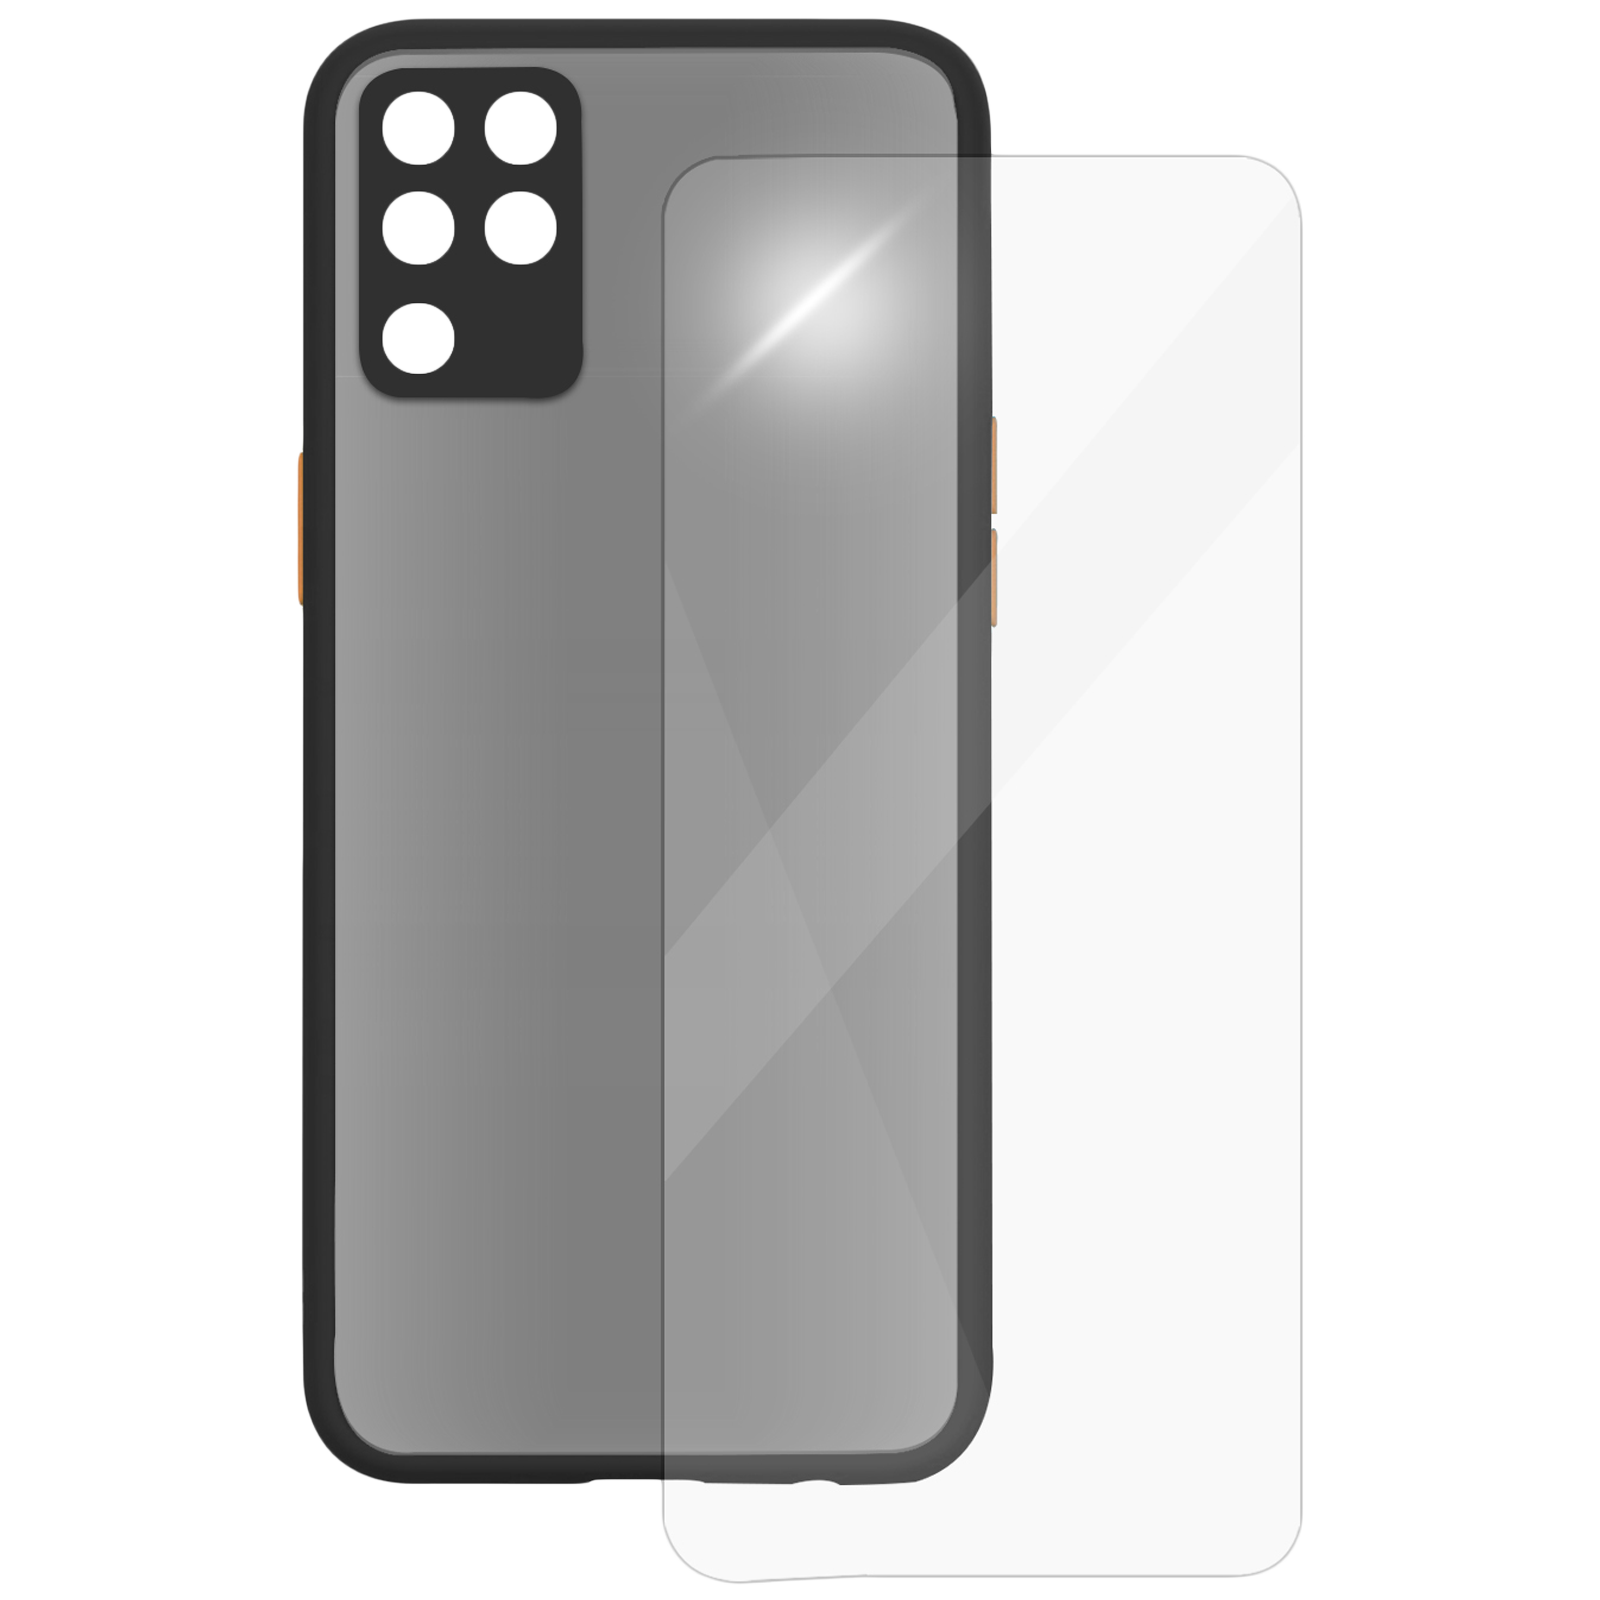 Arrow Camera Duplex Back Case and Screen Protector Bundle For Oppo F19 Pro (Ultra Transparent Visibility, AR-983, Black)_1